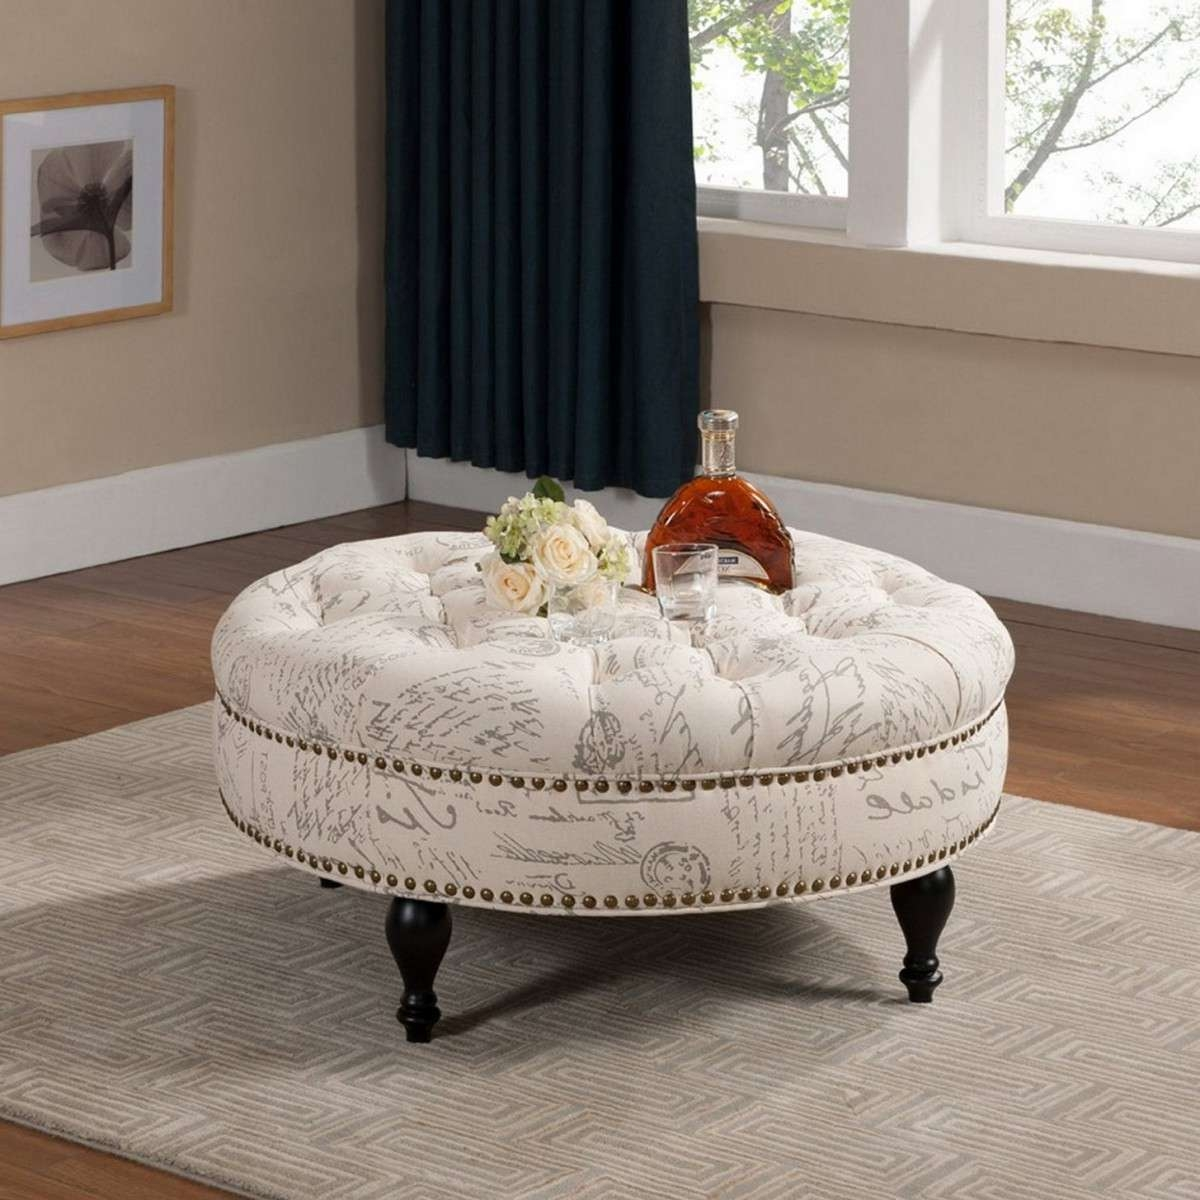 Round Ottoman Coffee Table Tray Decor Throughout Popular Round Coffee Table Trays (View 18 of 20)